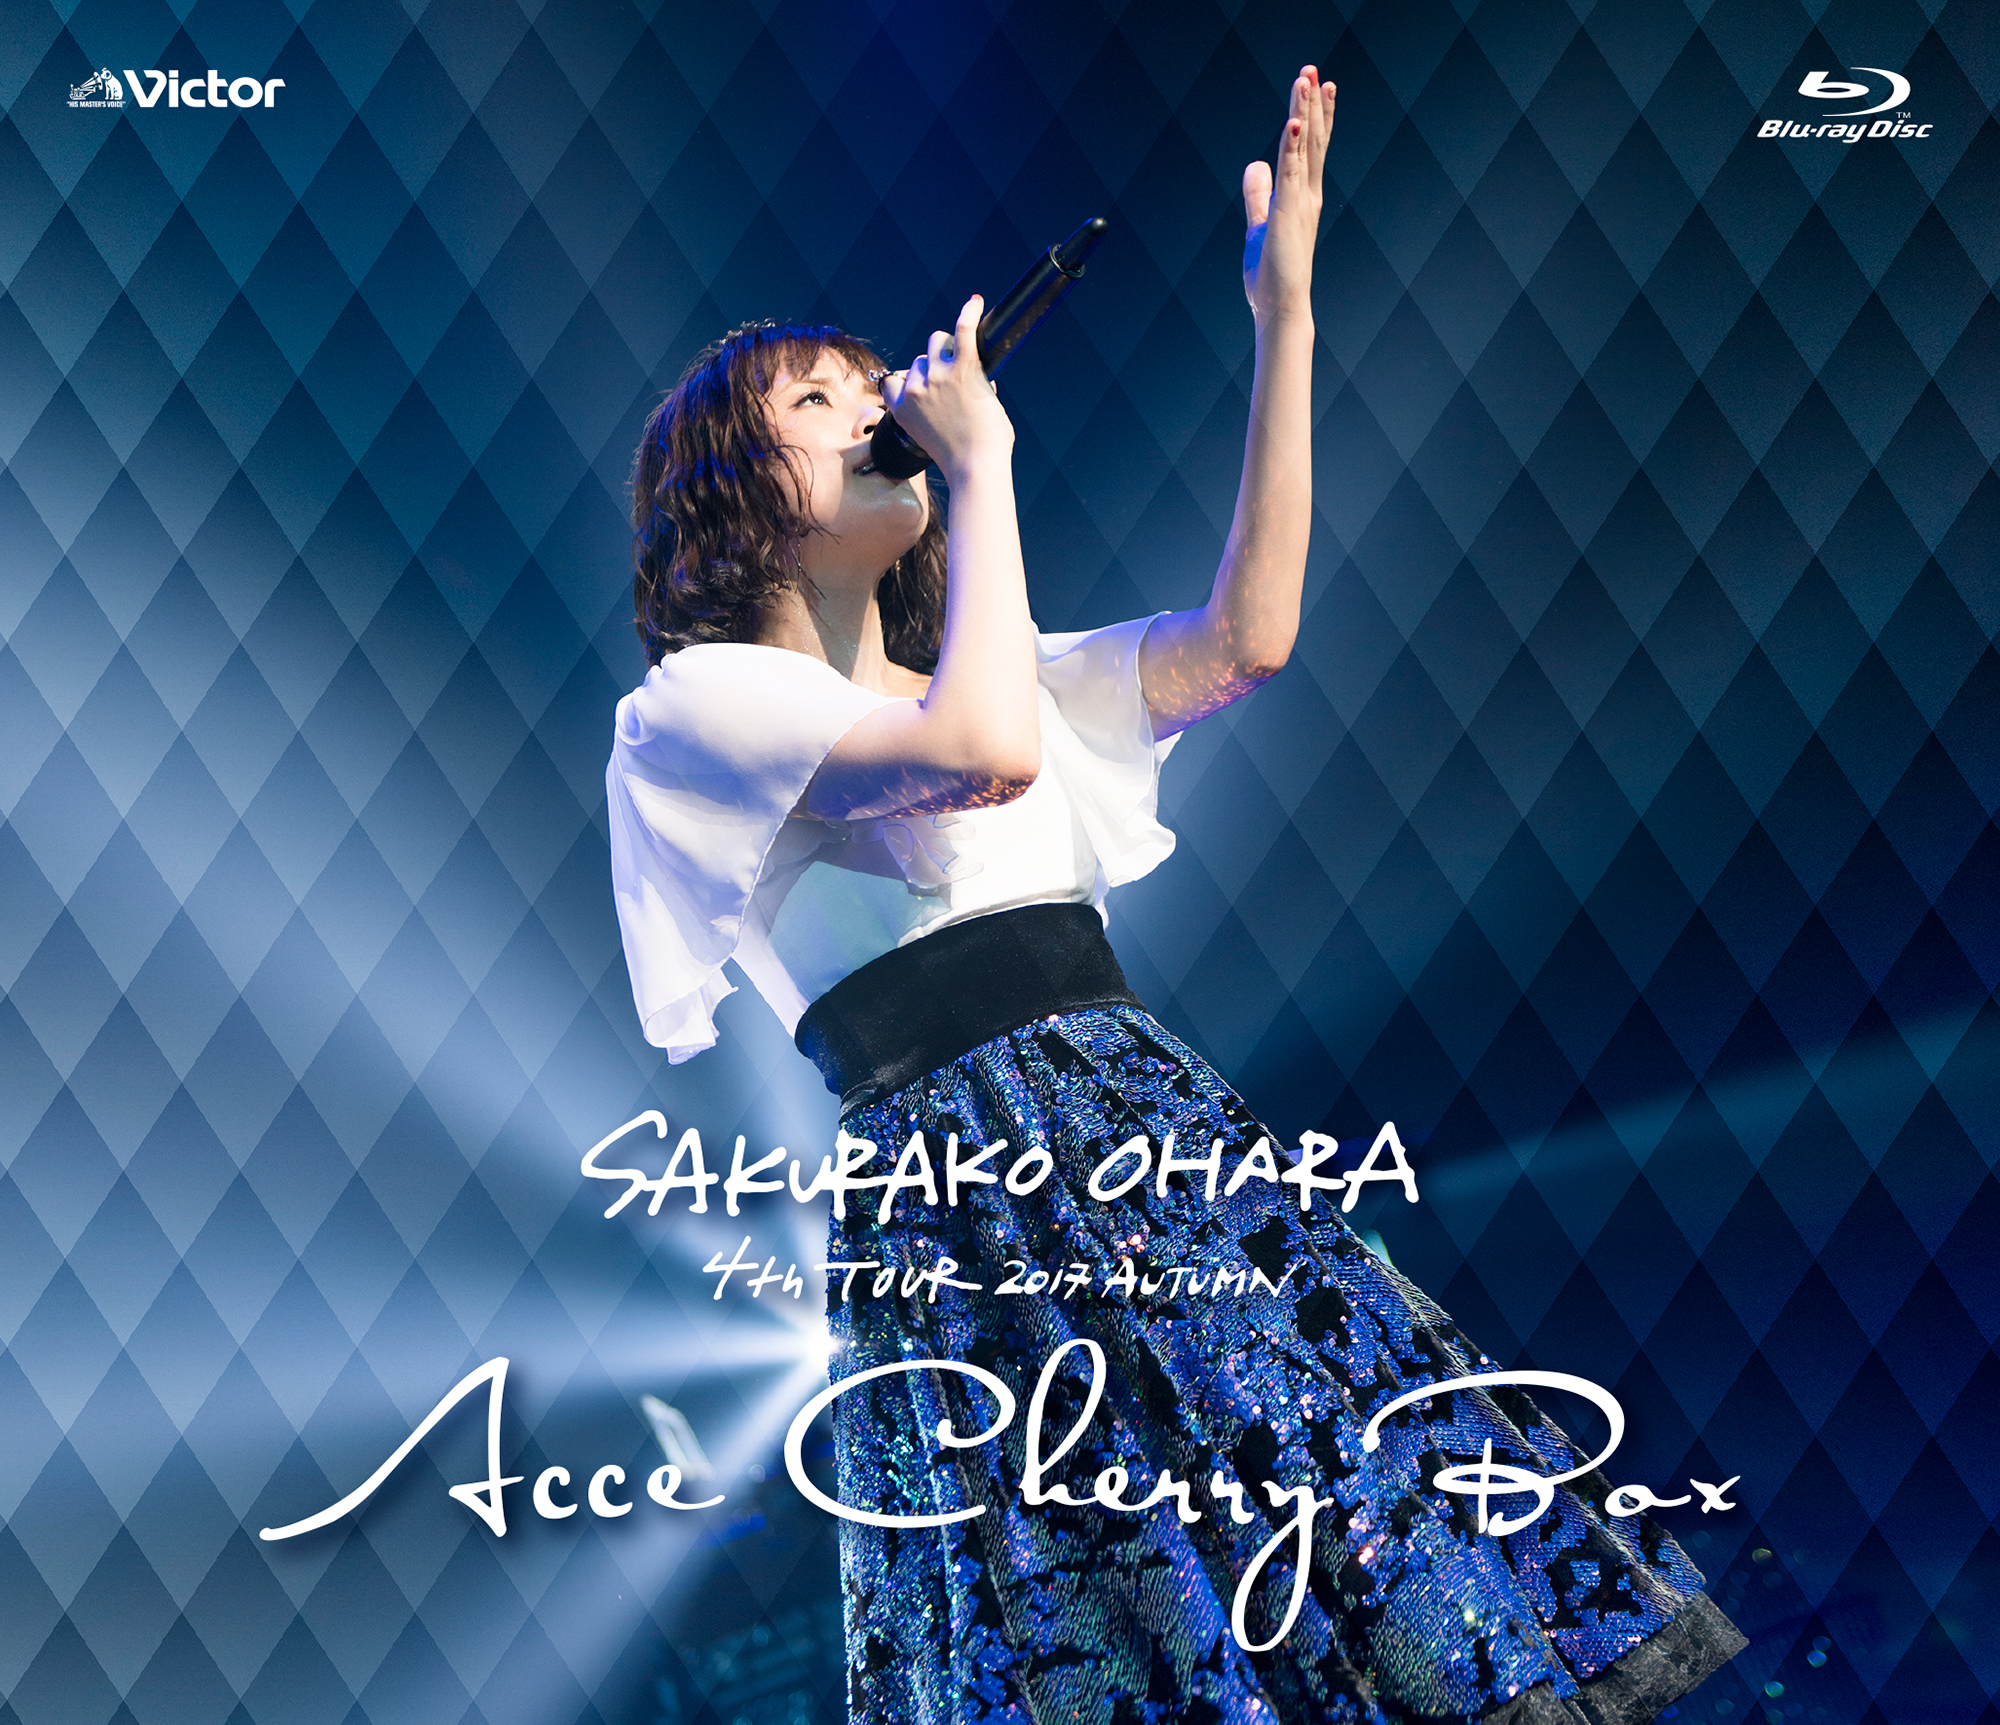 「大原櫻子 4th TOUR 2017 AUTUMN ~ACCECHERRY BOX~」Blu-ray通常盤